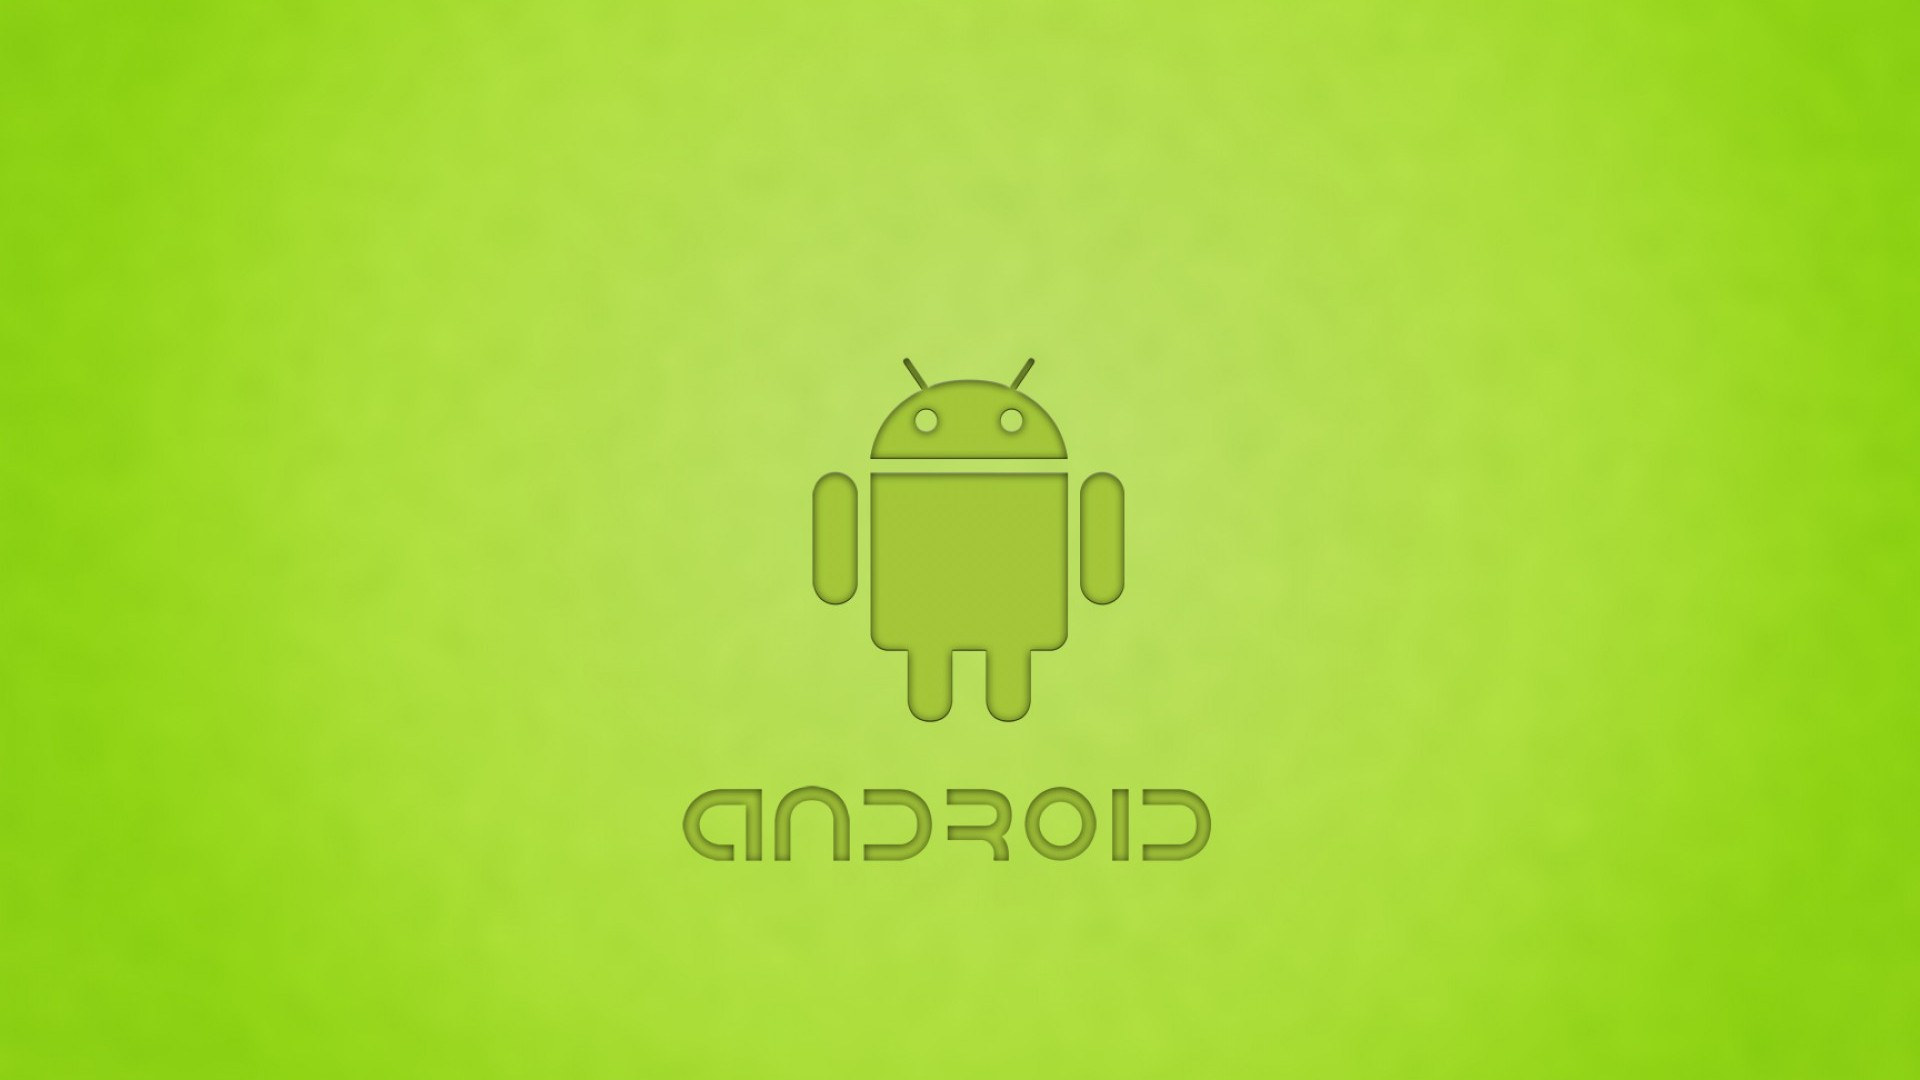 Android / 안드로이드